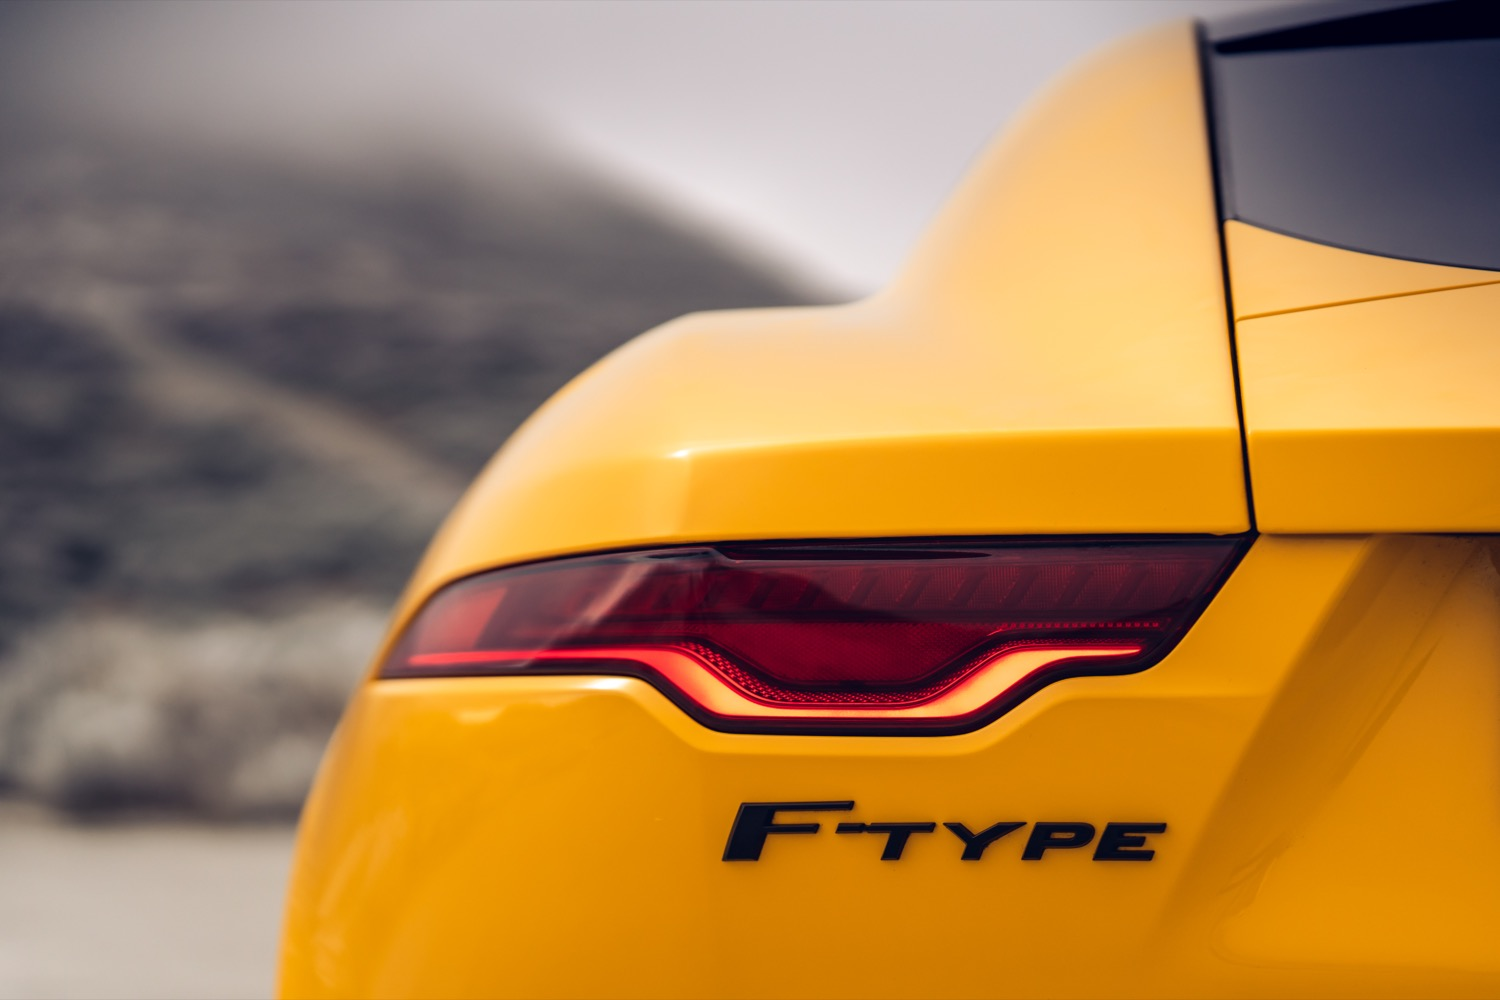 2020_jaguar_ftype_v8_awd_coupe_yellow_test_18